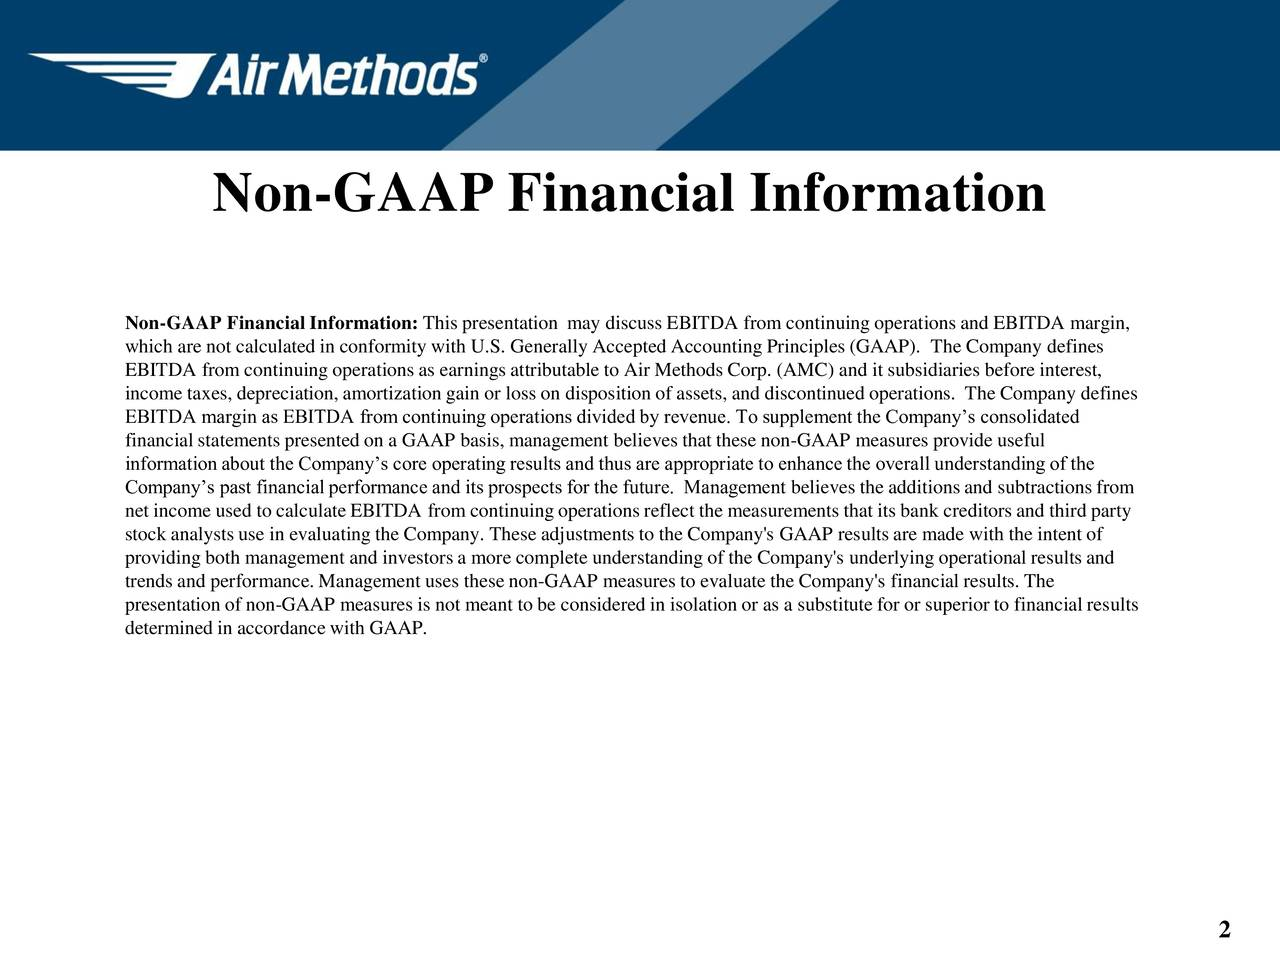 Non-GAAP Financial Information: This presentation may discuss EBITDA from continuing operations and EBITDA margin, which are not calculated in conformity with U.S. Generally Accepted Accounting Principles (GAAP). The Company defines EBITDA from continuing operations as earnings attributable to Air Methods Corp. (AMC) and it subsidiaries before interest, income taxes, depreciation, amortization gain or loss on disposition of assets, and discontinued operations. The Company defines EBITDA margin as EBITDA from continuing operations divided by revenue. To supplement the Companys consolidated financial statements presented on a GAAP basis, management believes that these non-GAAP measures provide useful information about the Companys core operating results and thus are appropriate to enhance the overall understanding of the Companys past financial performance and its prospects for the future. Management believes the additions and subtractions from net income used to calculate EBITDA from continuing operations reflect the measurements that its bank creditors and third party stock analysts use in evaluating the Company. These adjustments to the Company's GAAP results are made with the intent of providing both management and investors a more complete understanding of the Company's underlying operational results and trends and performance. Management uses these non-GAAP measures to evaluate the Company's financial results. The presentation of non-GAAP measures is not meant to be considered in isolation or as a substitute for or superior to financial results determined in accordance with GAAP. 2